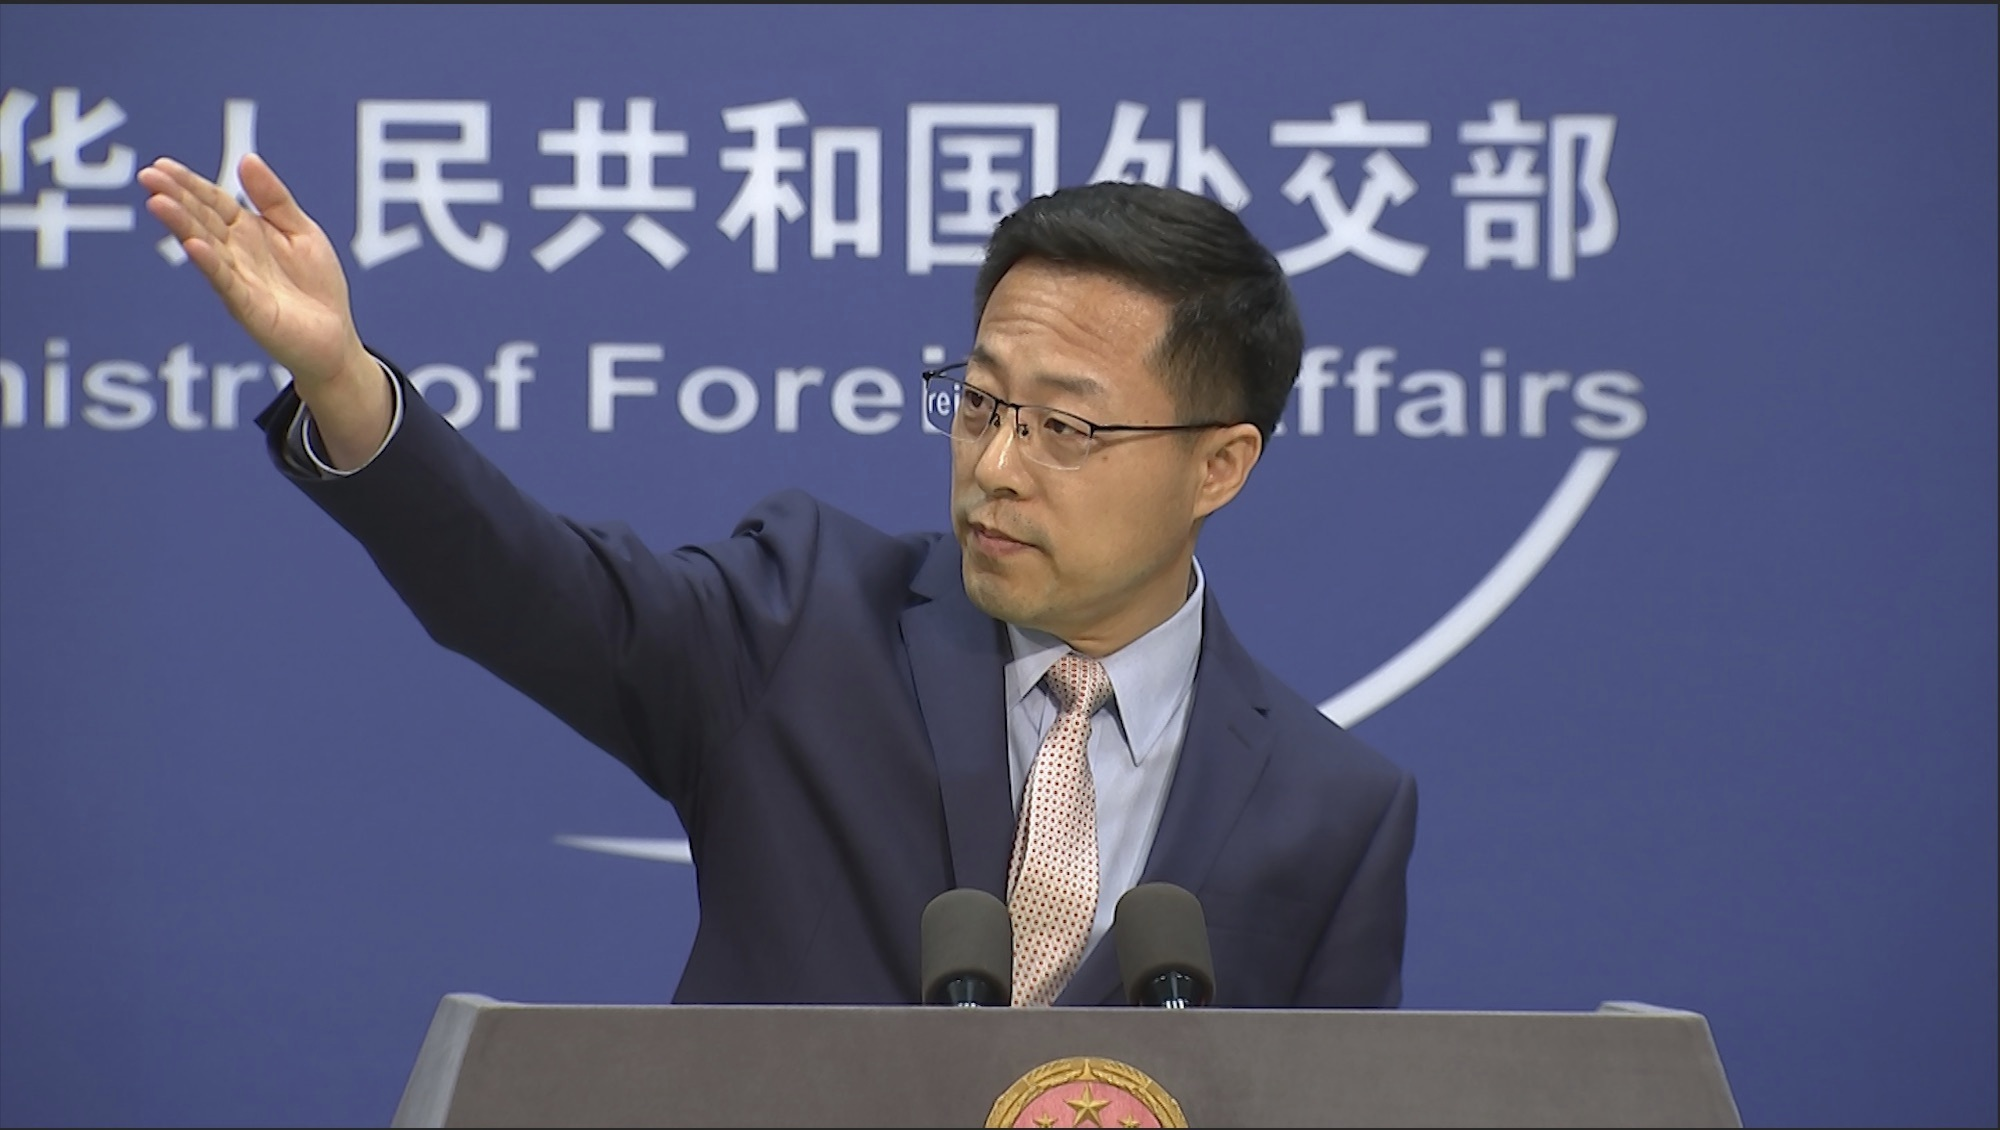 China's Ministry of Foreign Affairs spokesman Zhao Lijian gestures during a press briefing in Beijing on Monday, November 23.